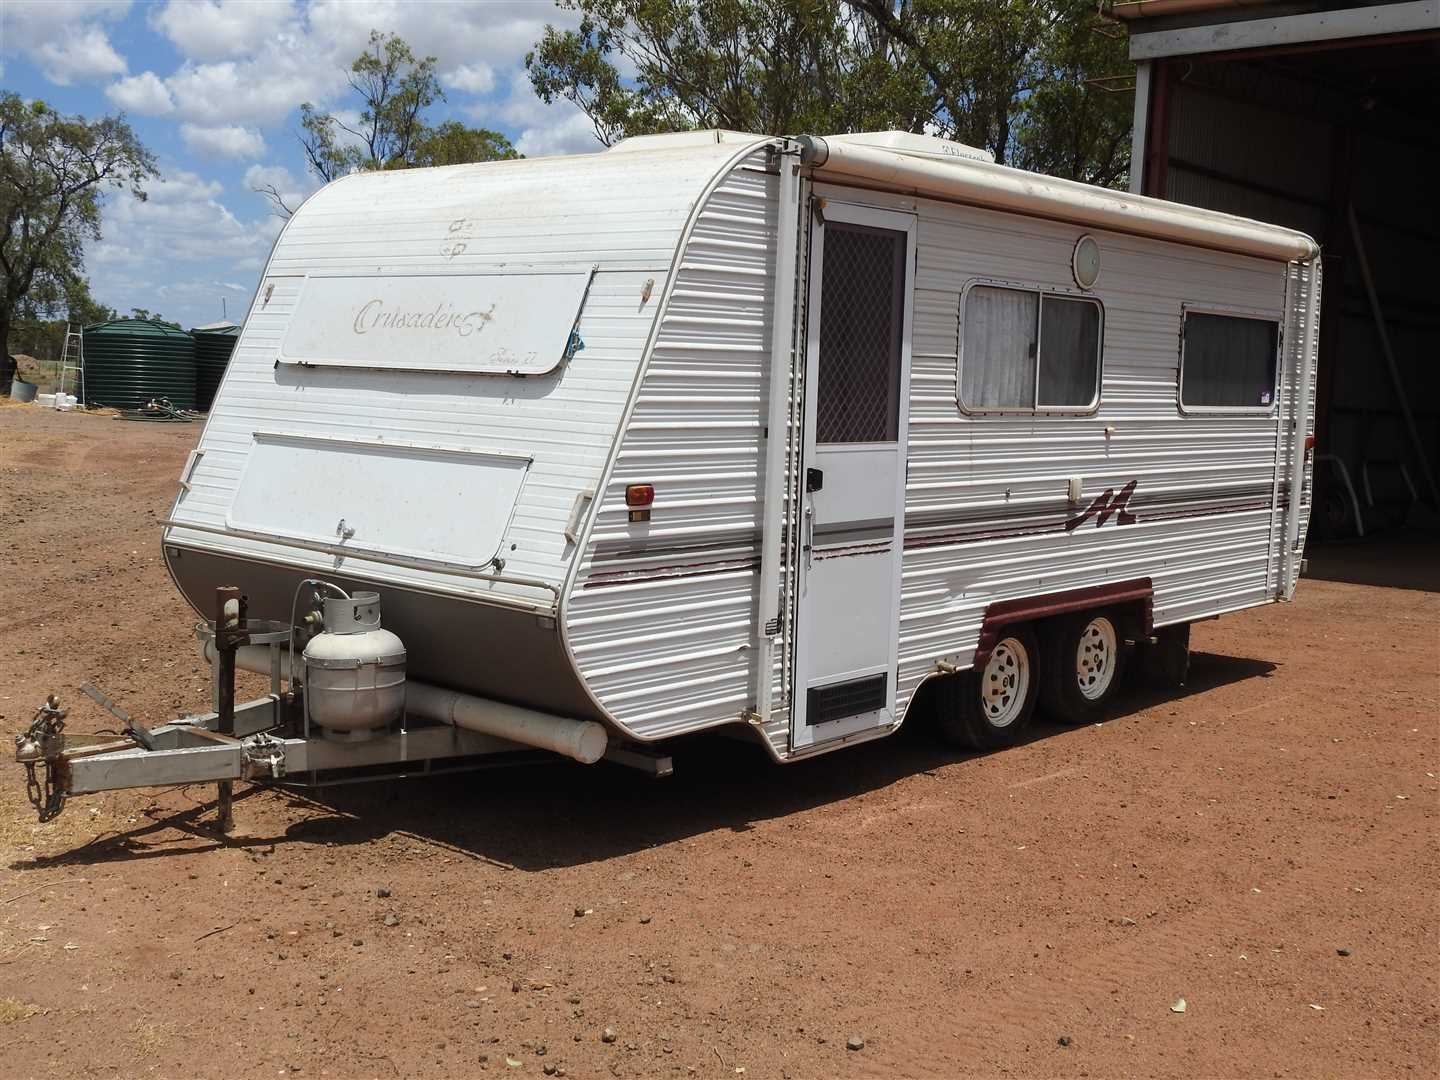 OUTSIDE VENDOR 2000 Monarch Crusader Carava, 20ft,  will have roadworthy by sale day.